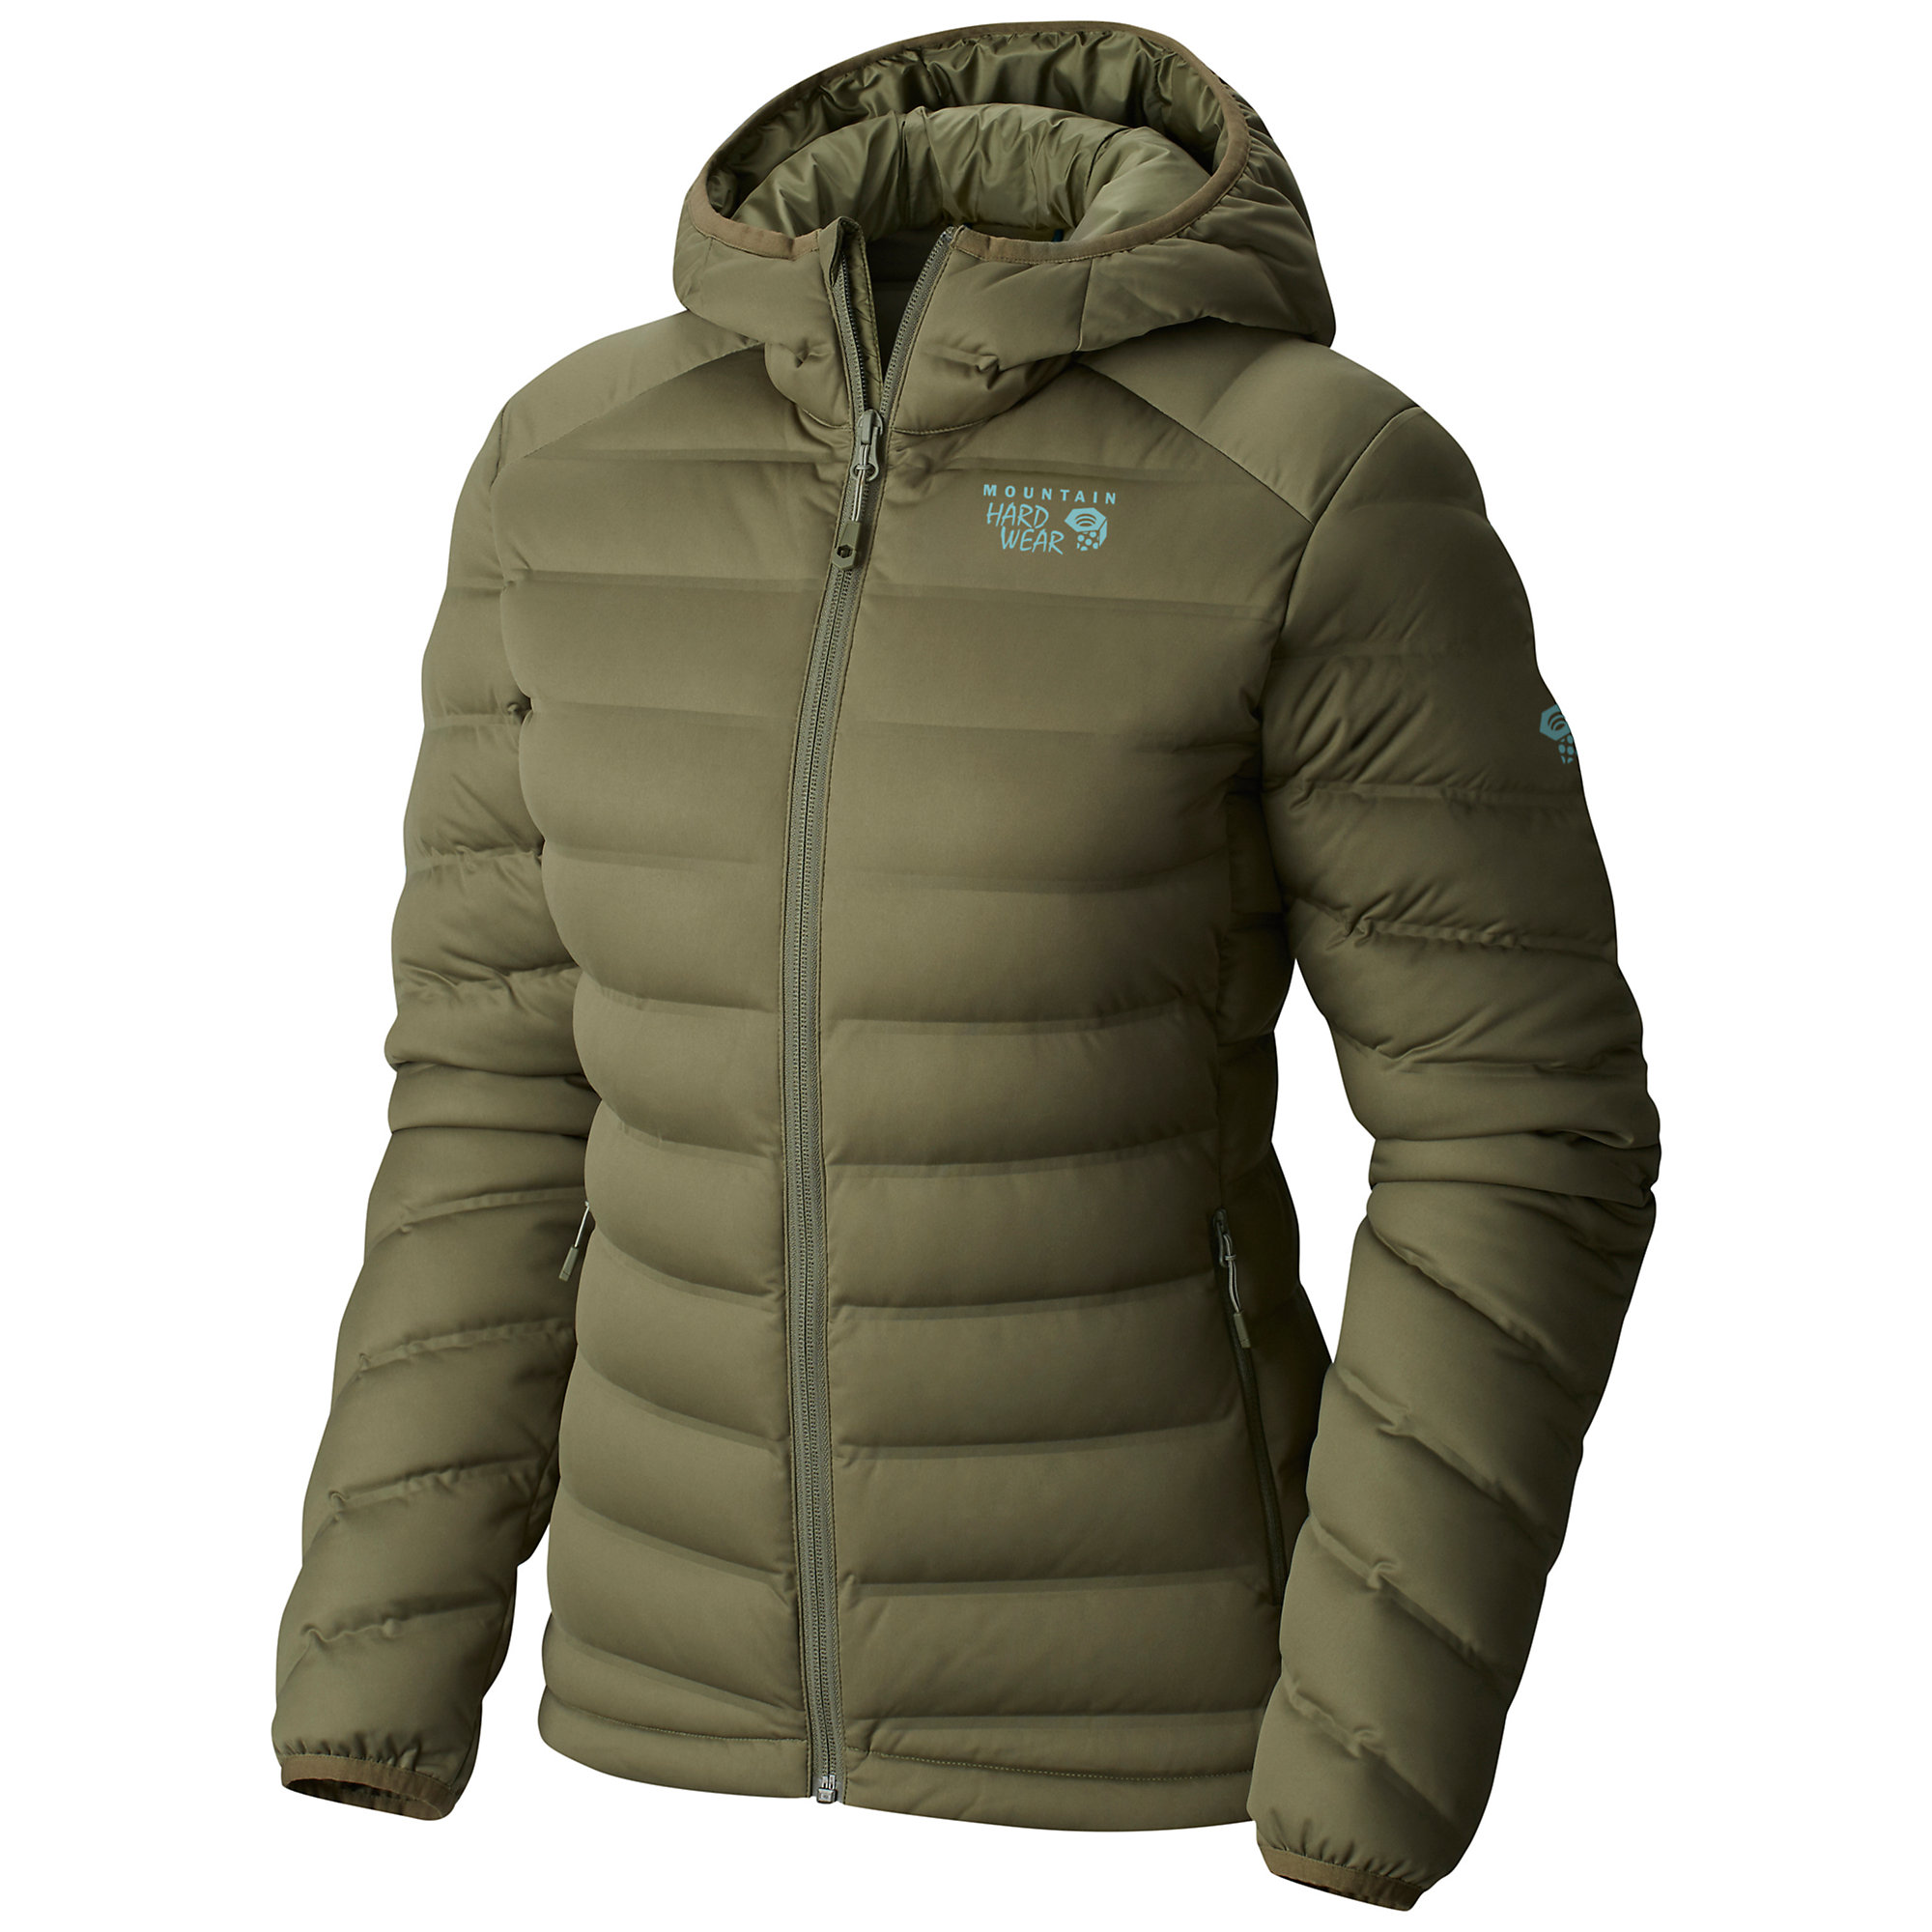 21547865824 UPC 887487794505 product image for Mountain Hardwear StretchDown Hooded  Jacket 397 L-